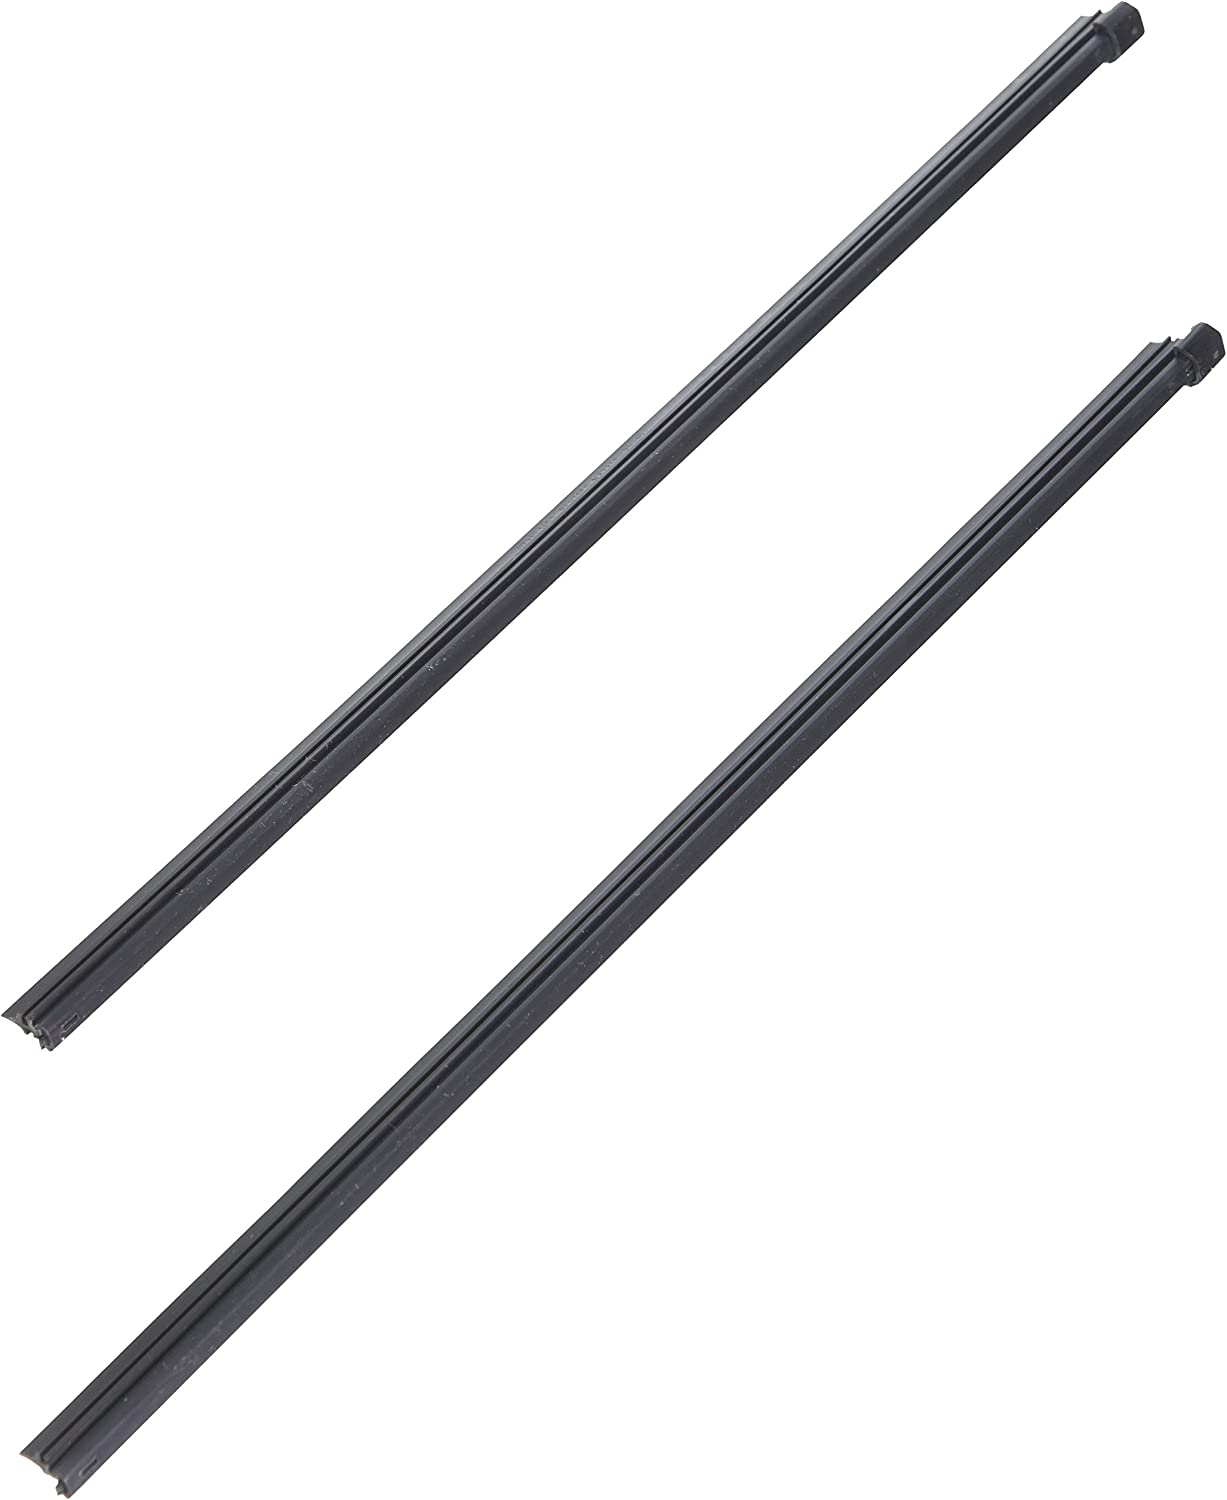 Anco N-13R Wiper Blade Refill Chicago SEAL limited product Mall